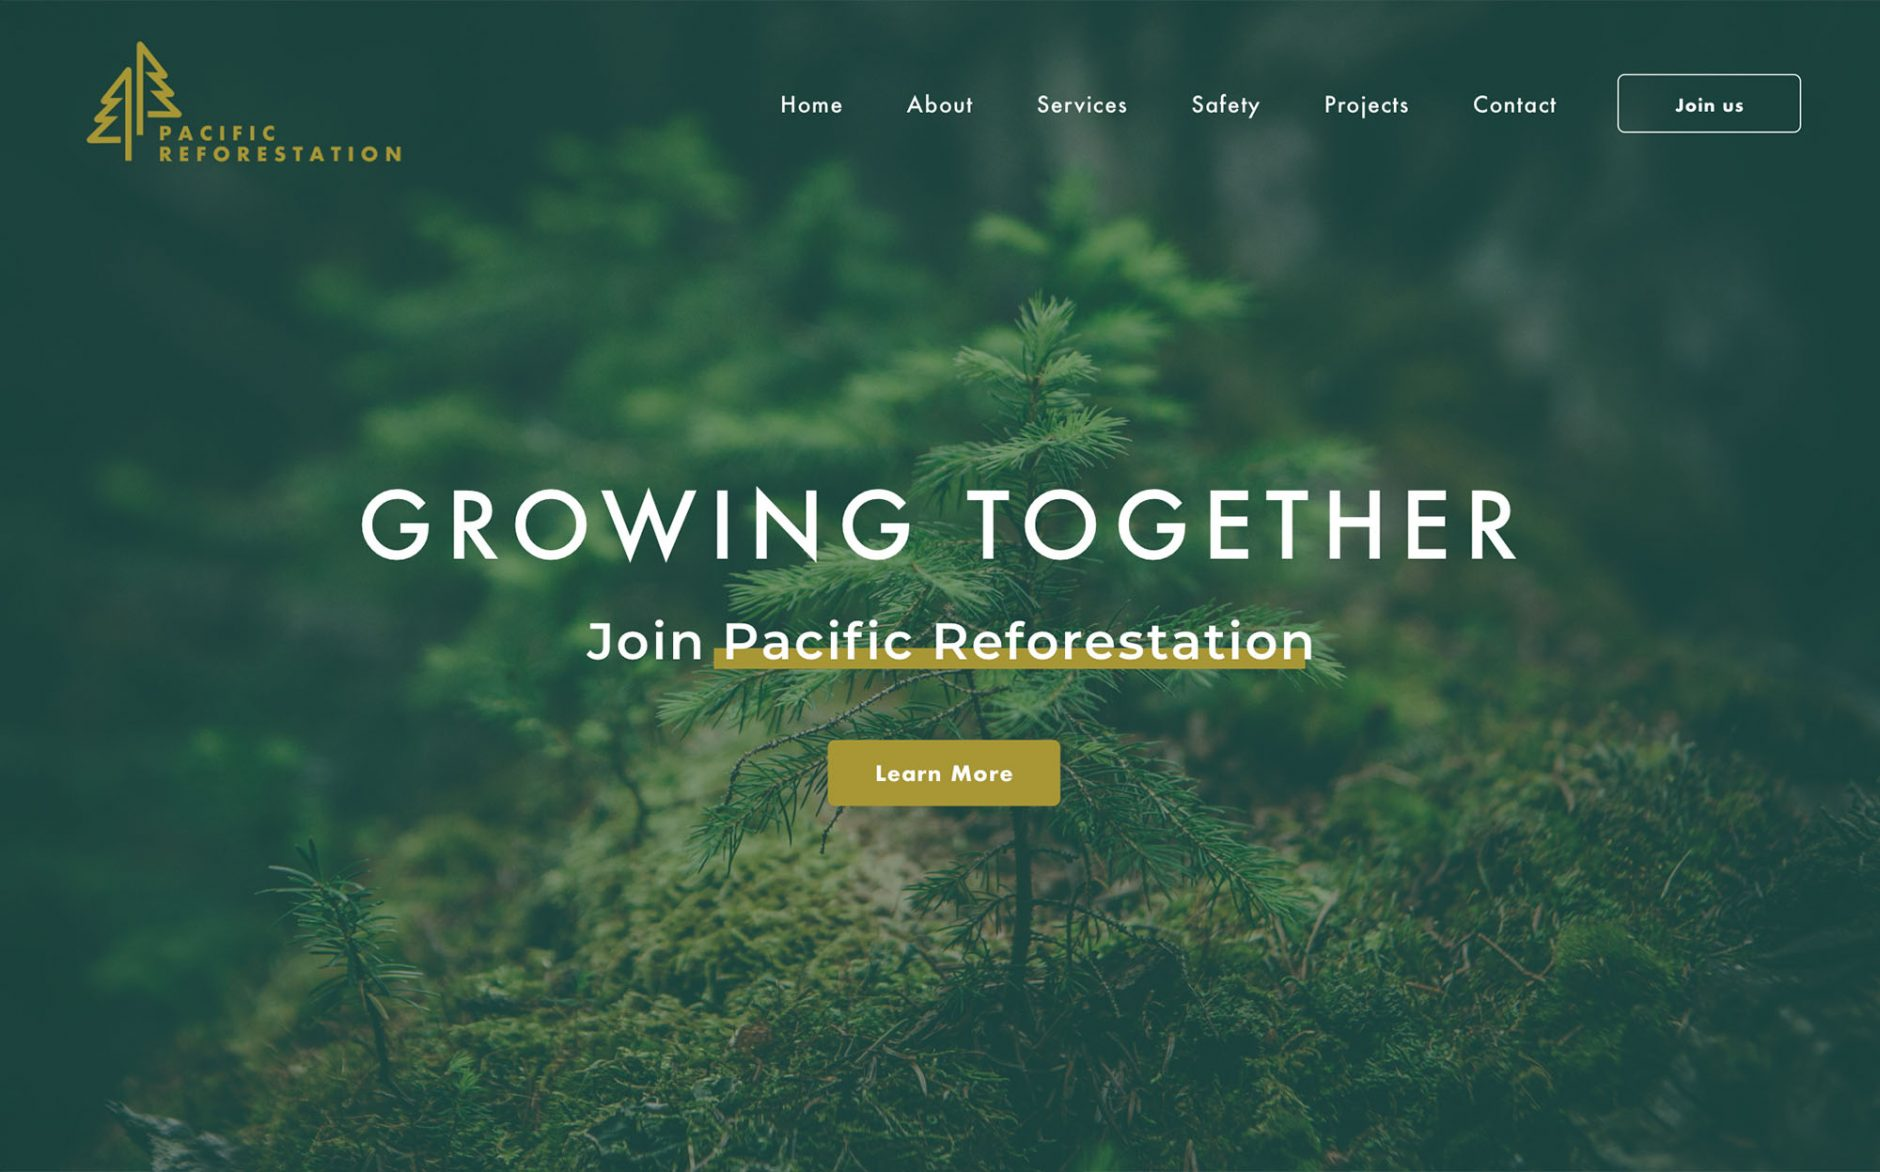 Pacific Reforestation